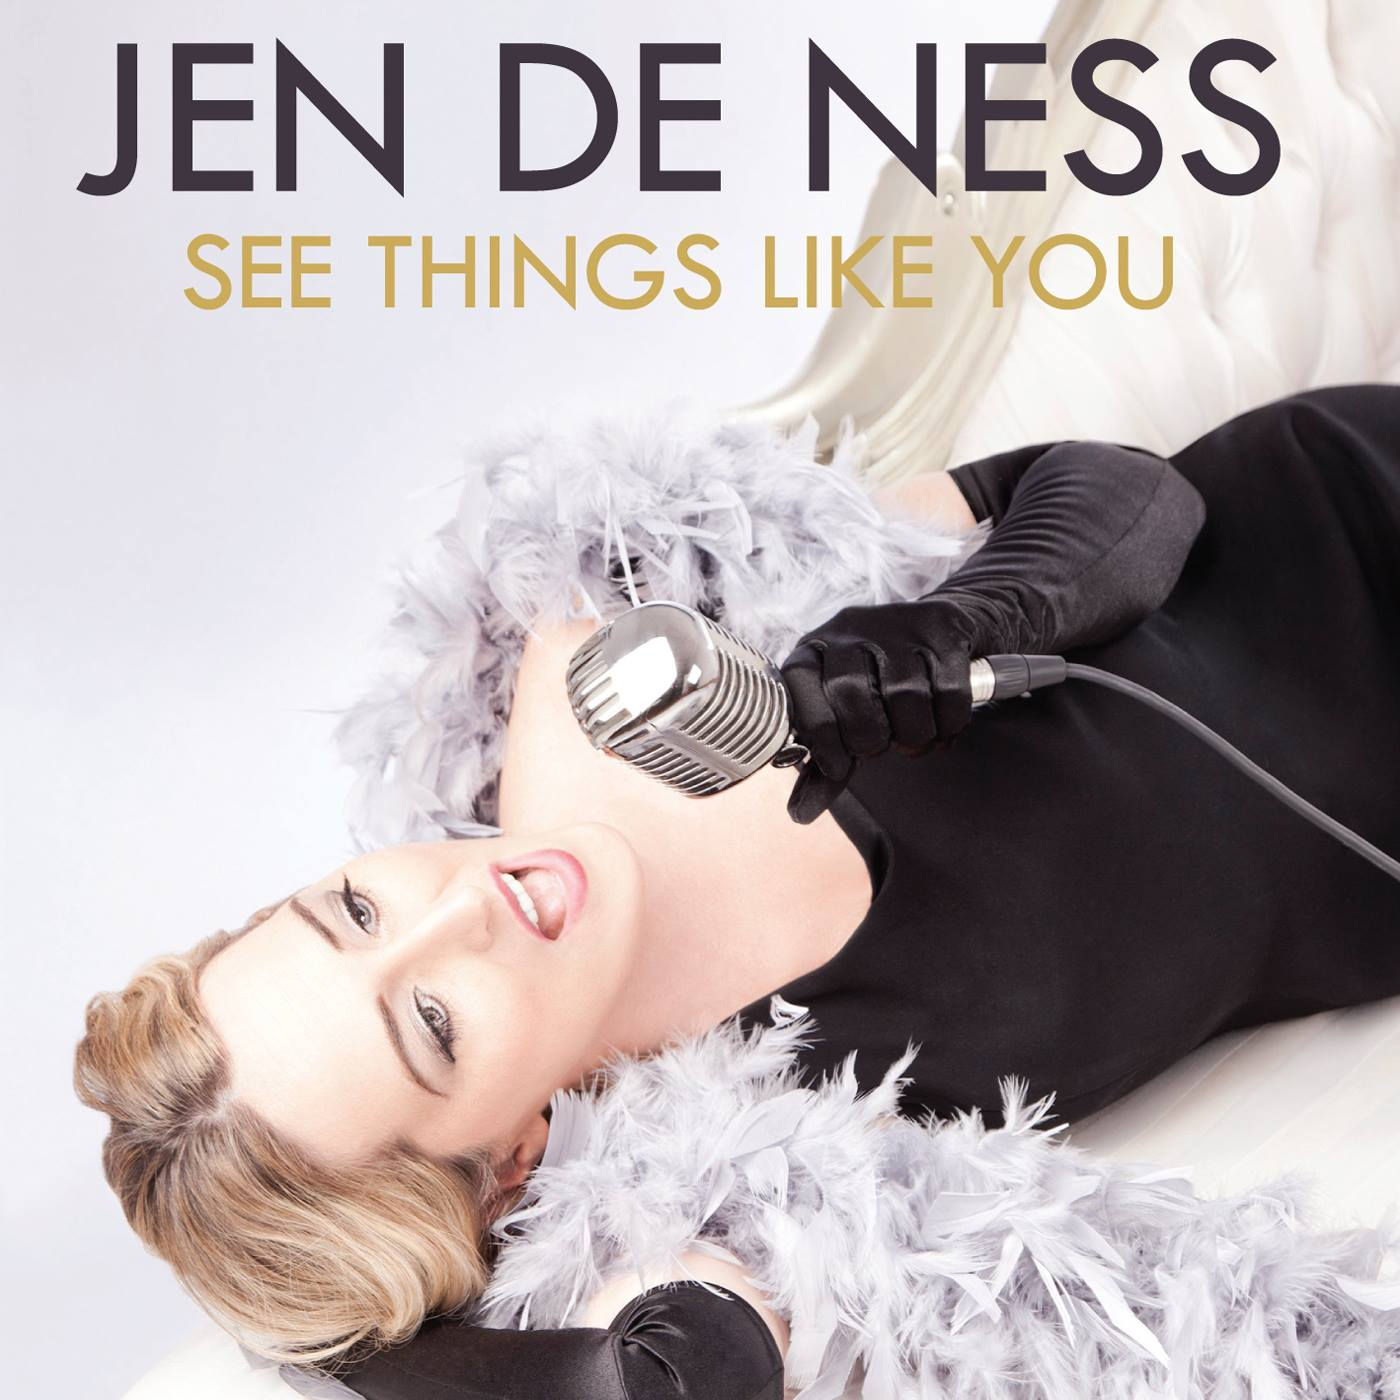 Perth Fringe Festival: Jen de Ness Quintet in 'See Things Like You' Jazz Cabaret